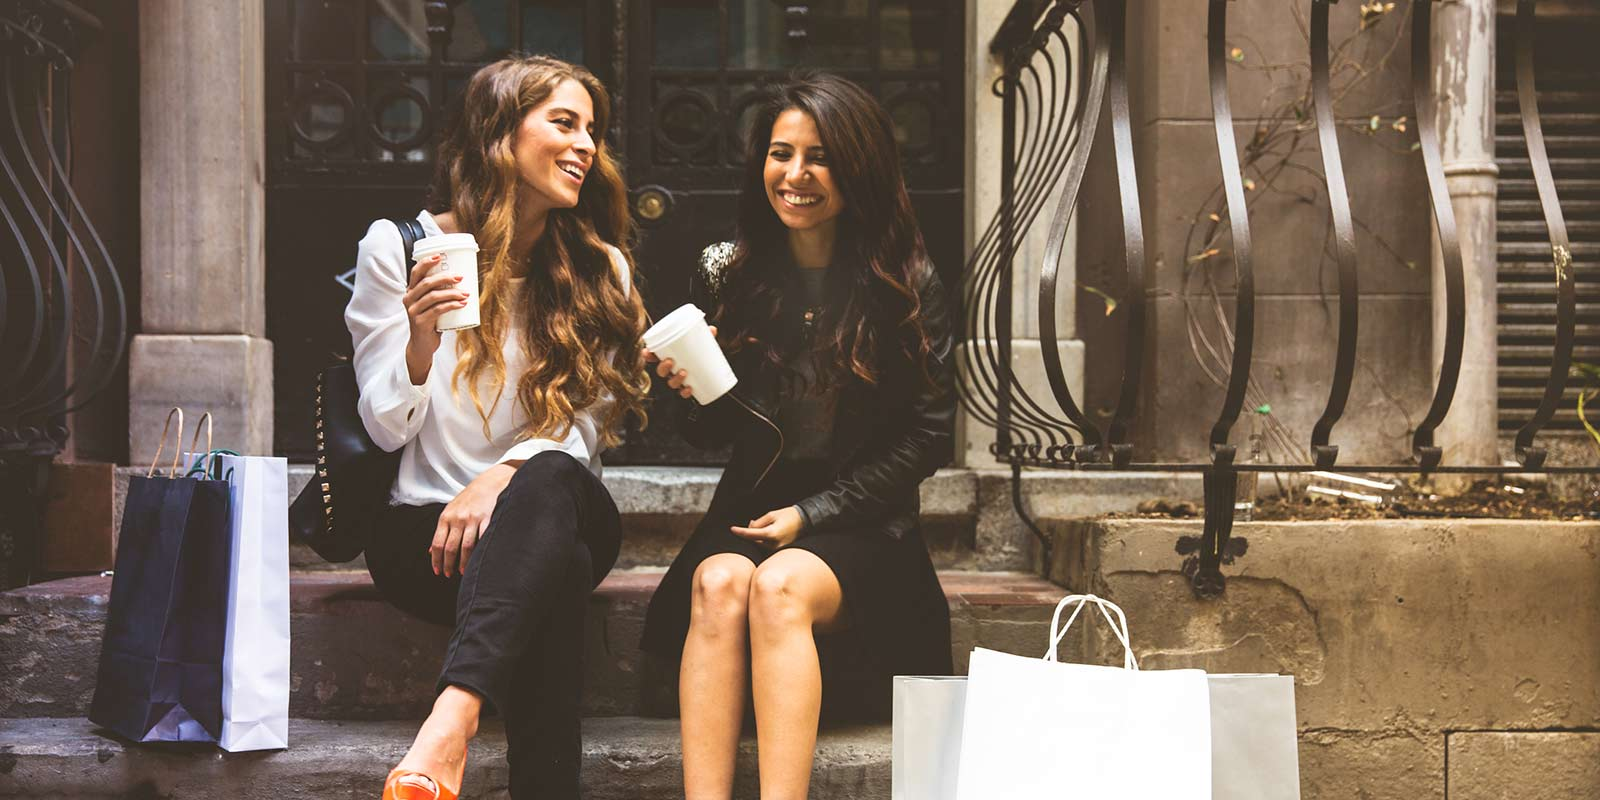 Two women sit on steps and enjoy coffee together after a day of shopping in the city.